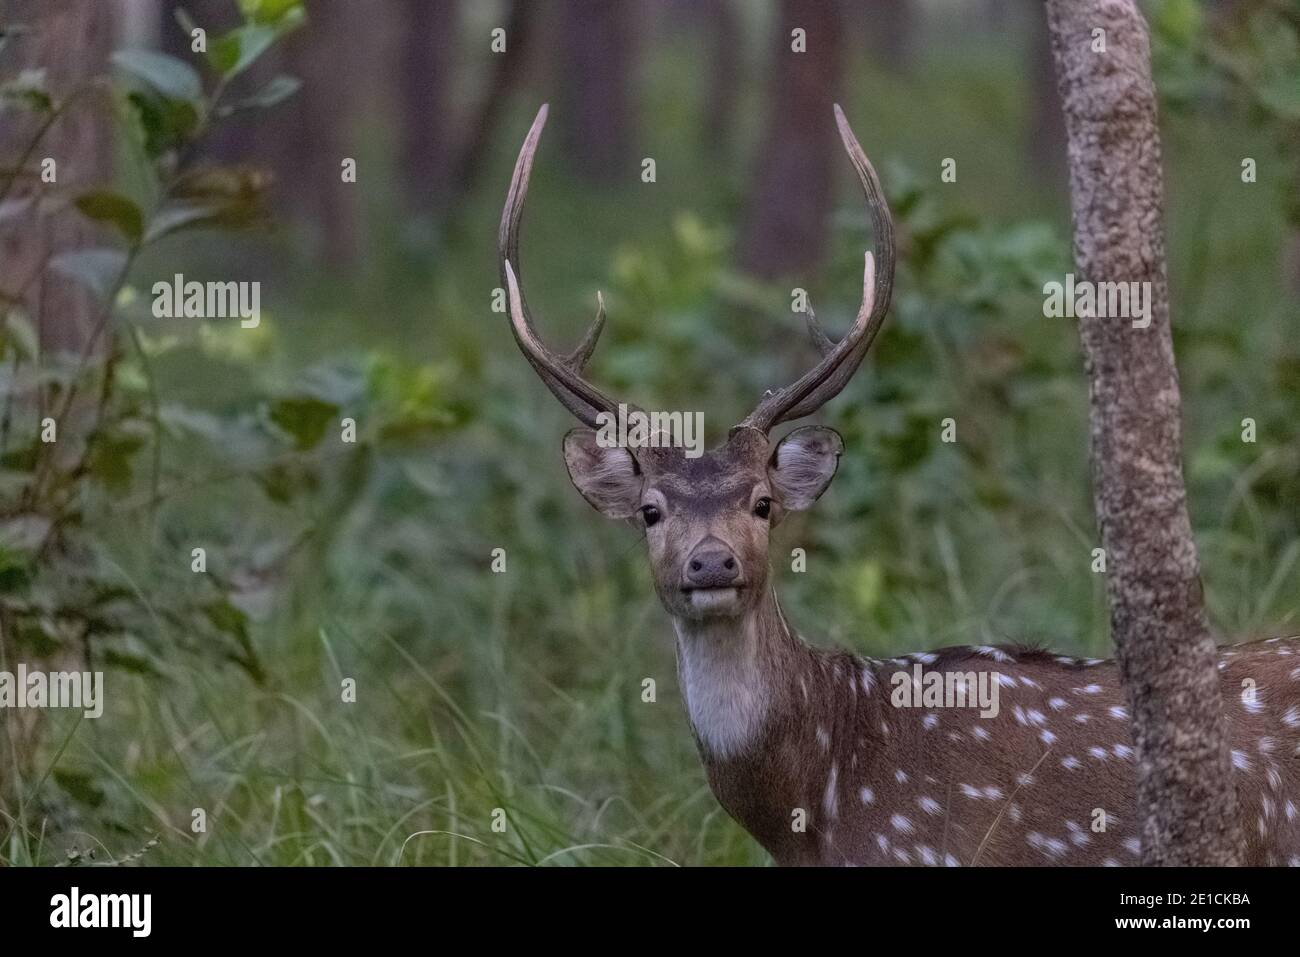 Spotted Deer or Chital (Axis axis) standing in the lush green forest, is a species of deer that is native to the Indian subcontinent. Stock Photo